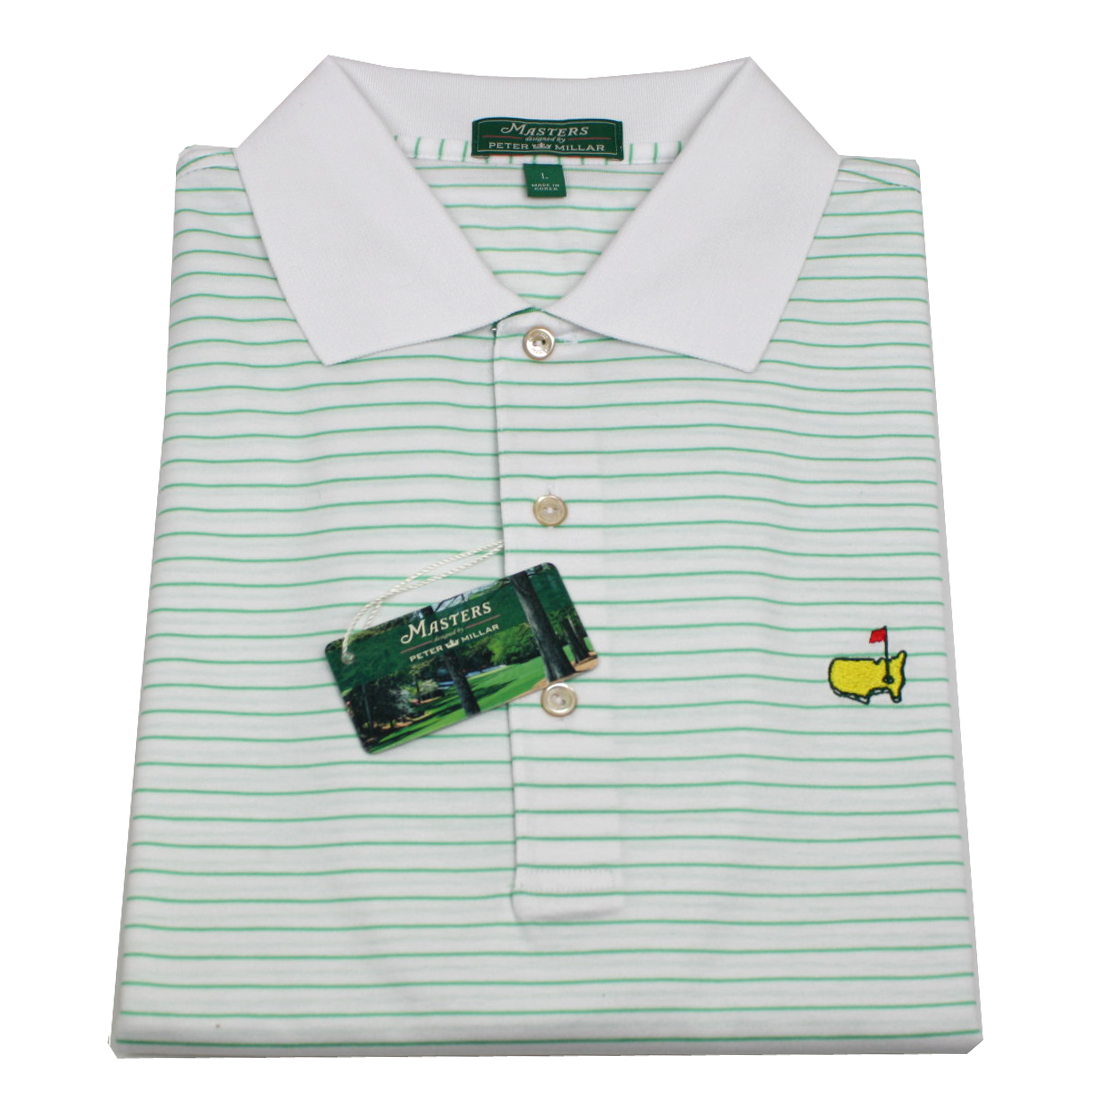 Peter Millar White With Lt Green New 2014 Masters Golf